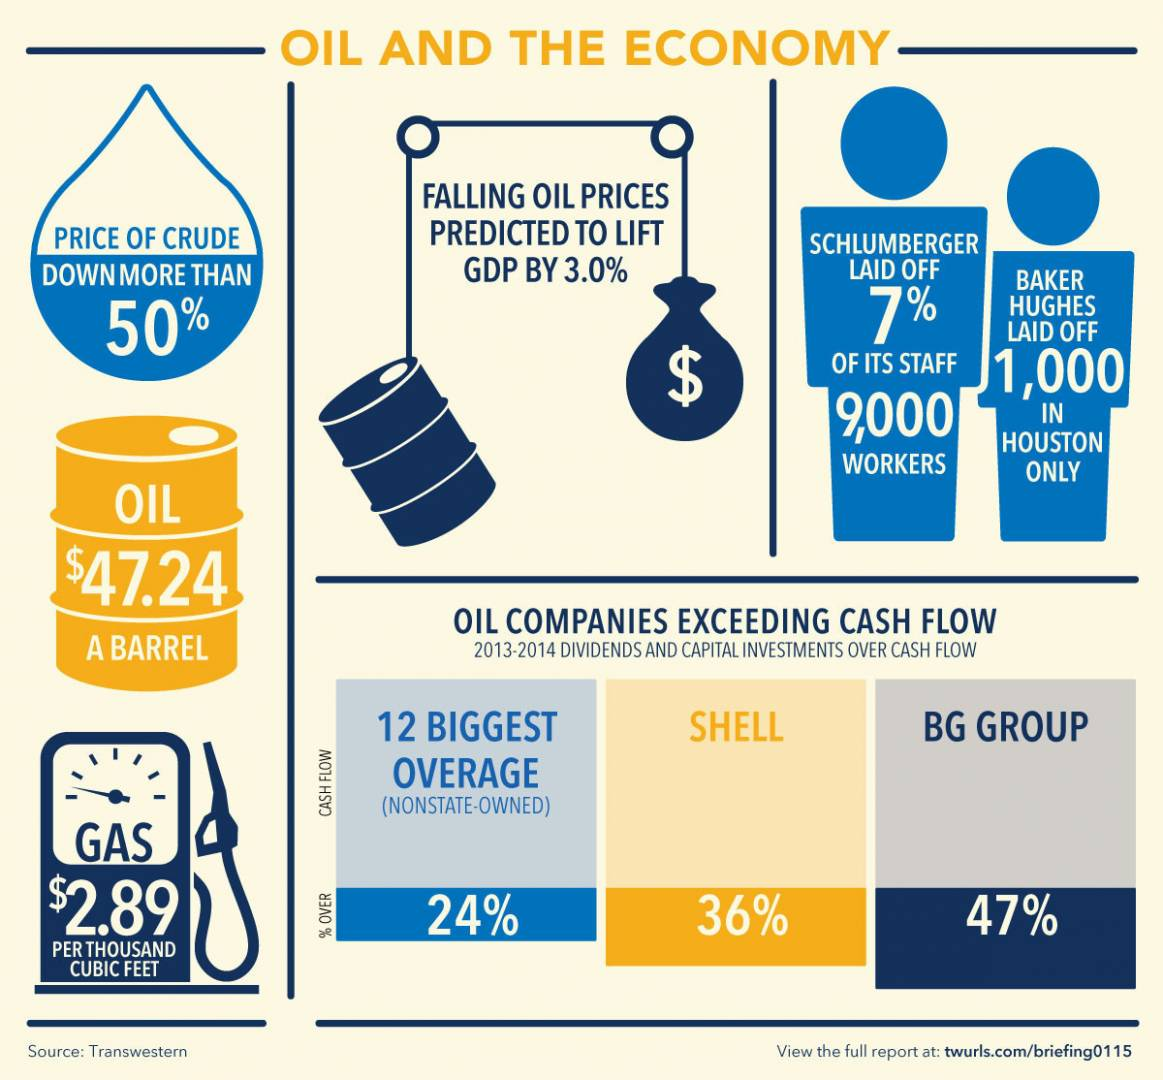 Oil and the economy infographic